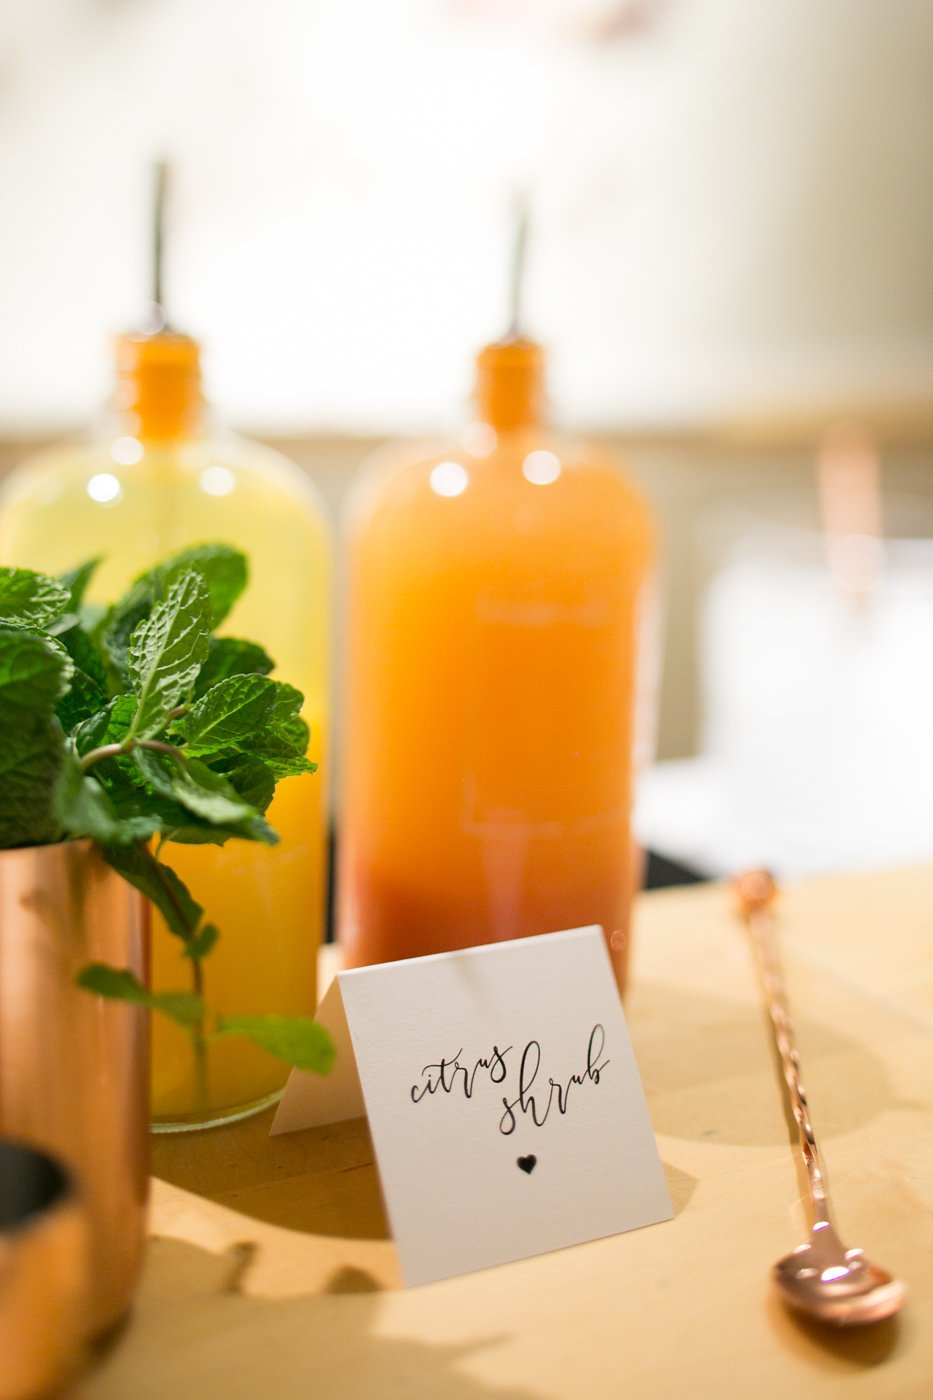 Citrus cocktail syrup in glass bottle